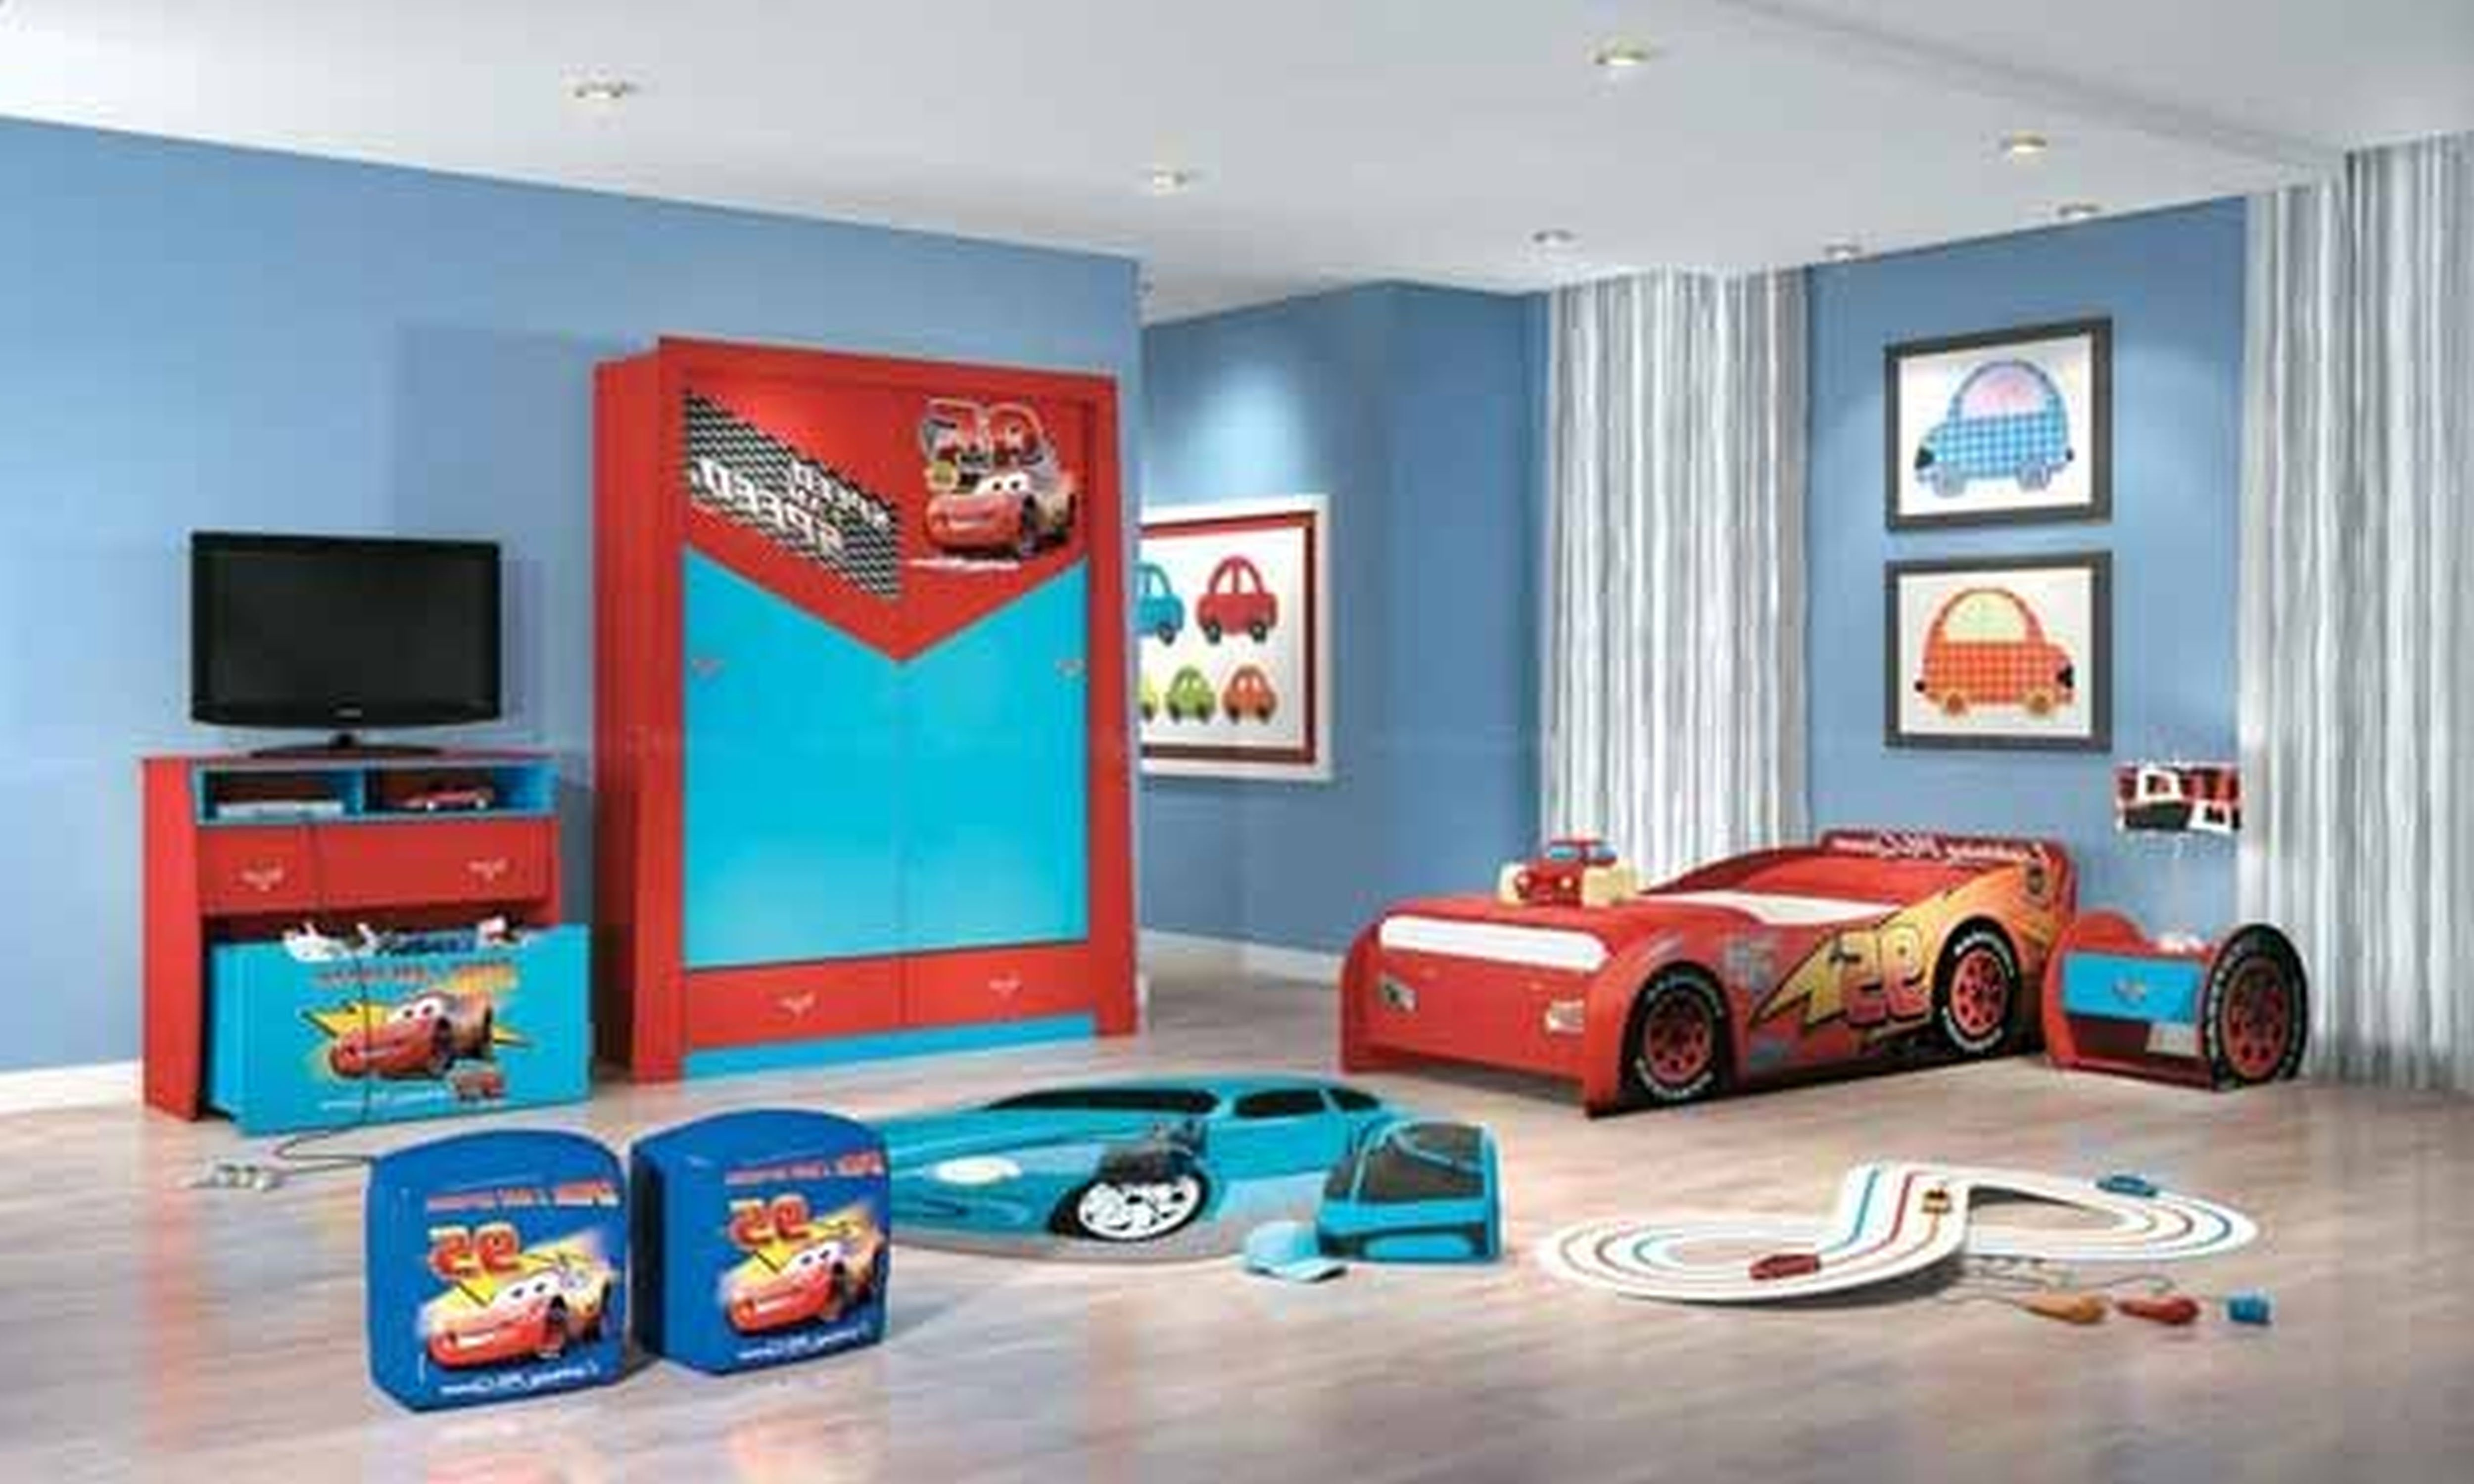 10 Stunning Kids Room Ideas For Boys kids room decorating ideas decoration home goods jewelry design for